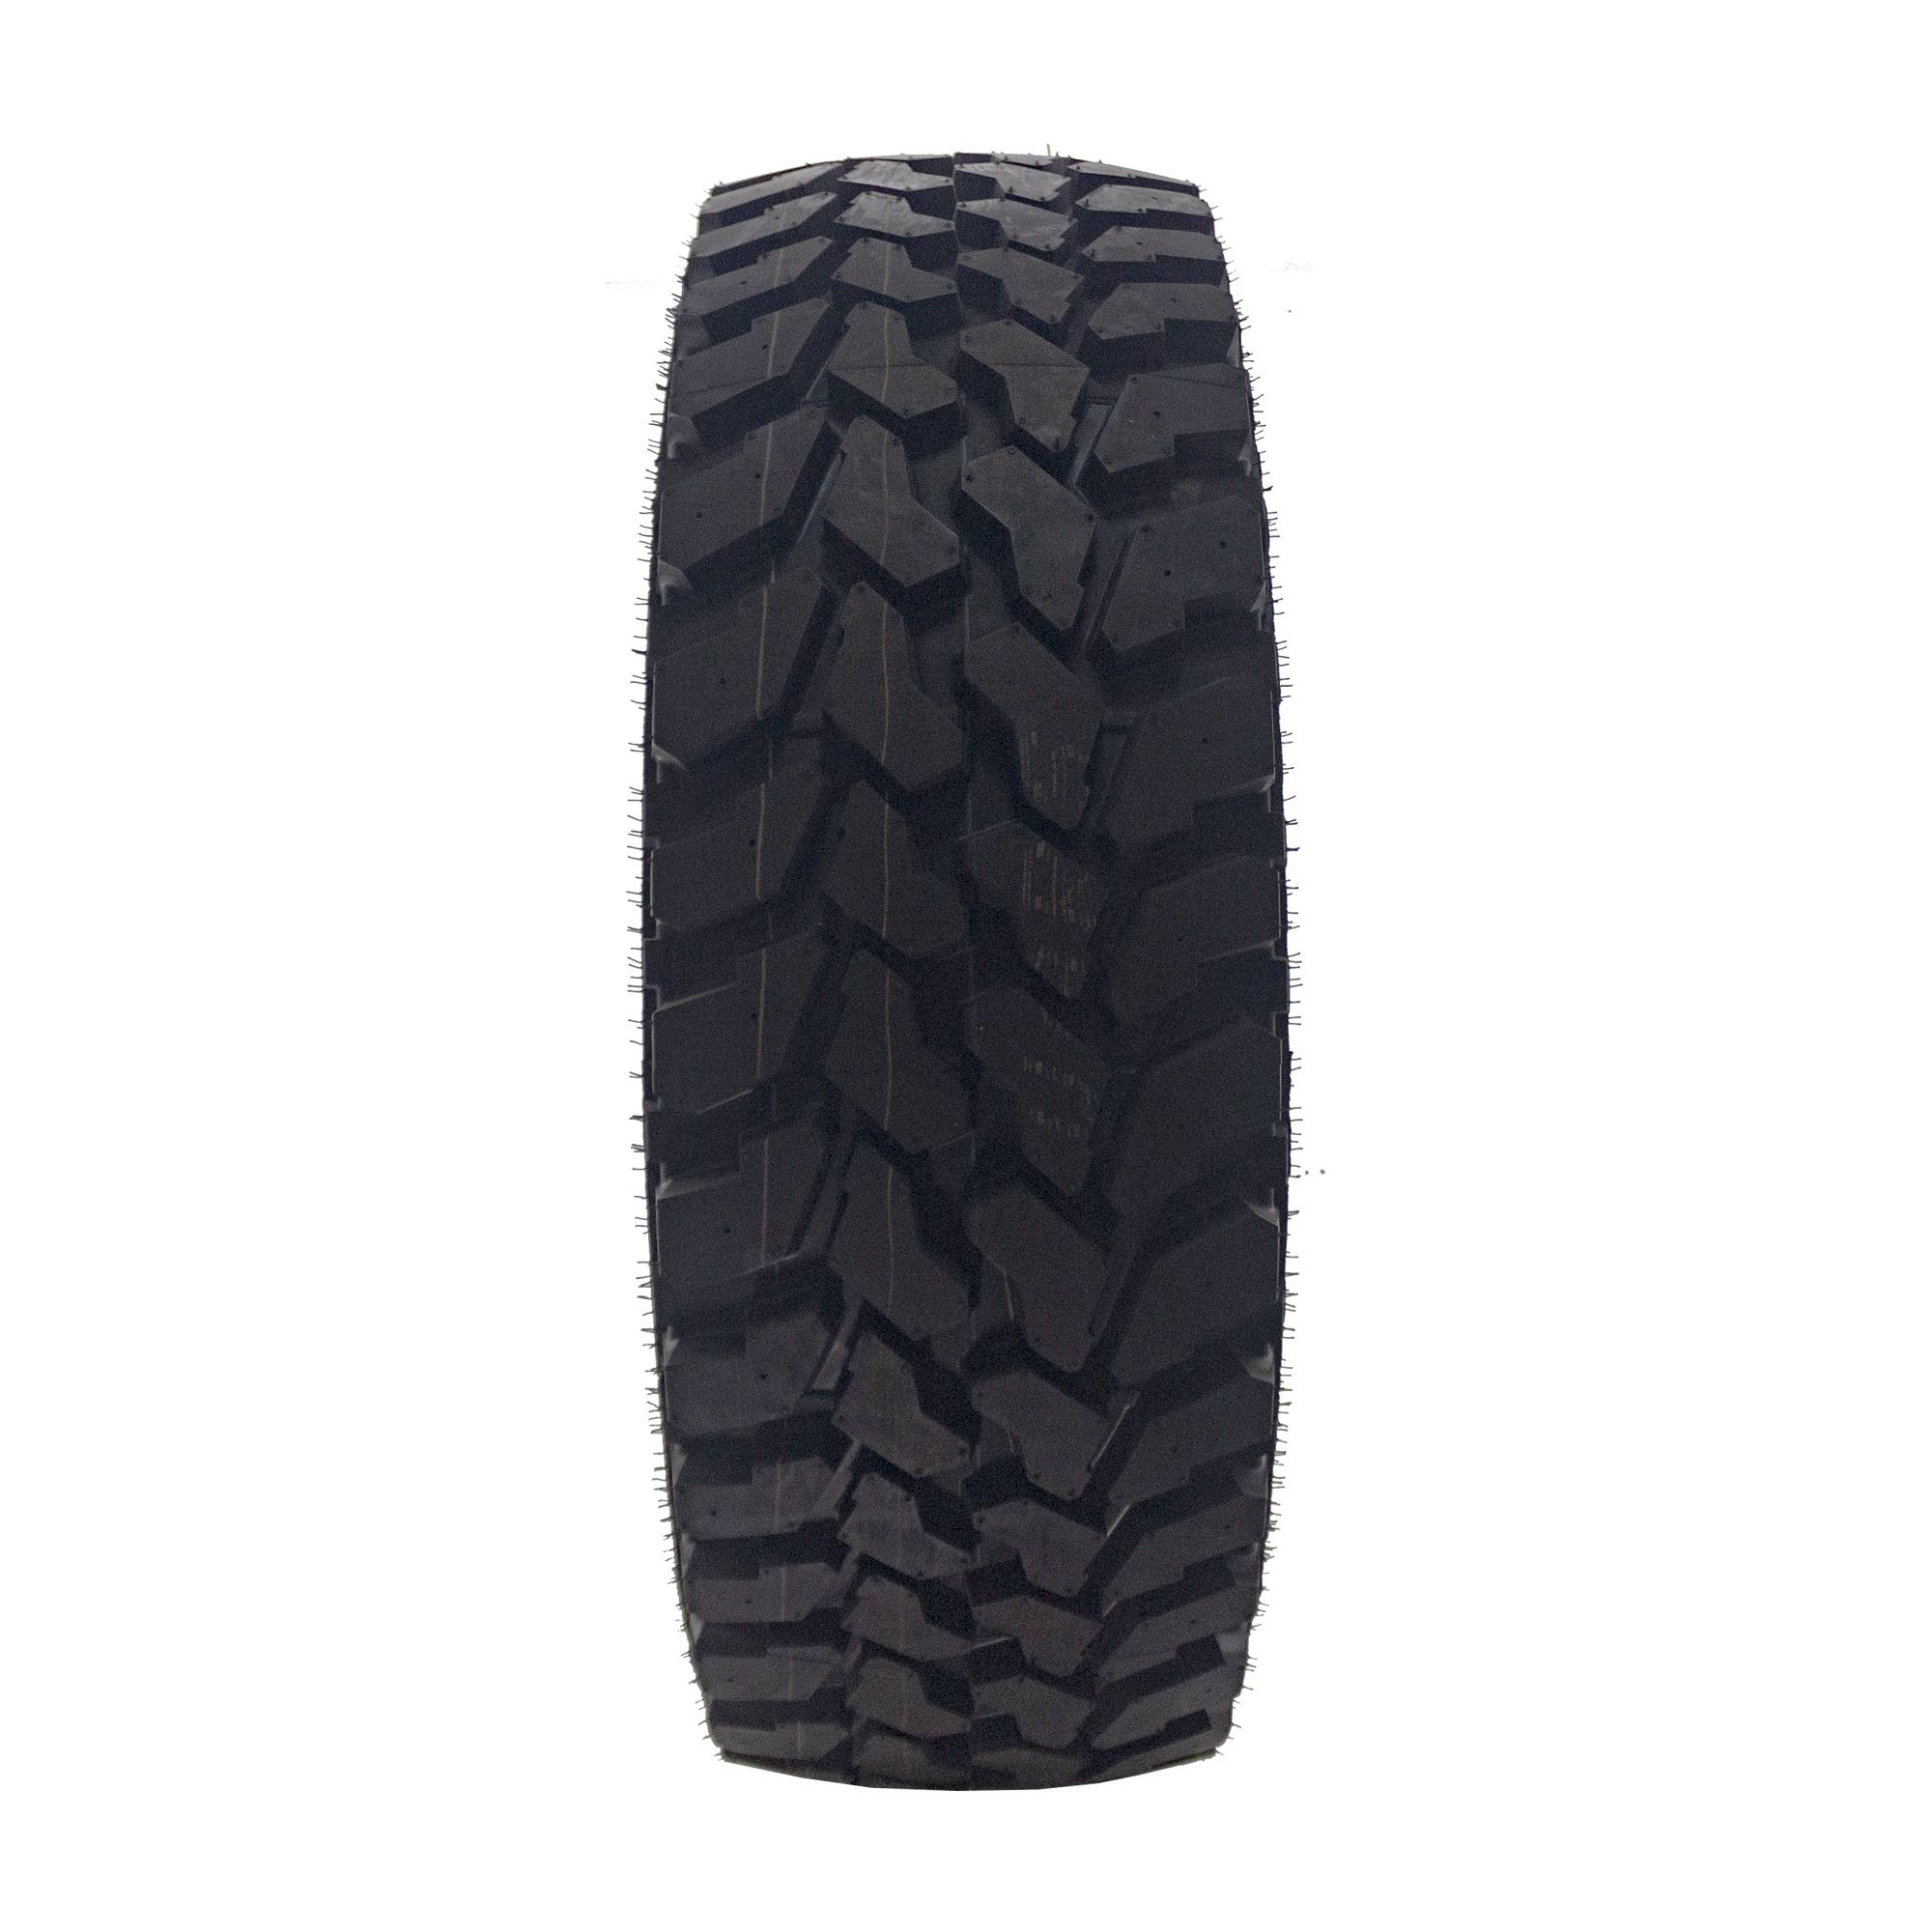 PNEU 31X10.5 R15 FIRESTONE DESTINATION MT23 M+S 109Q